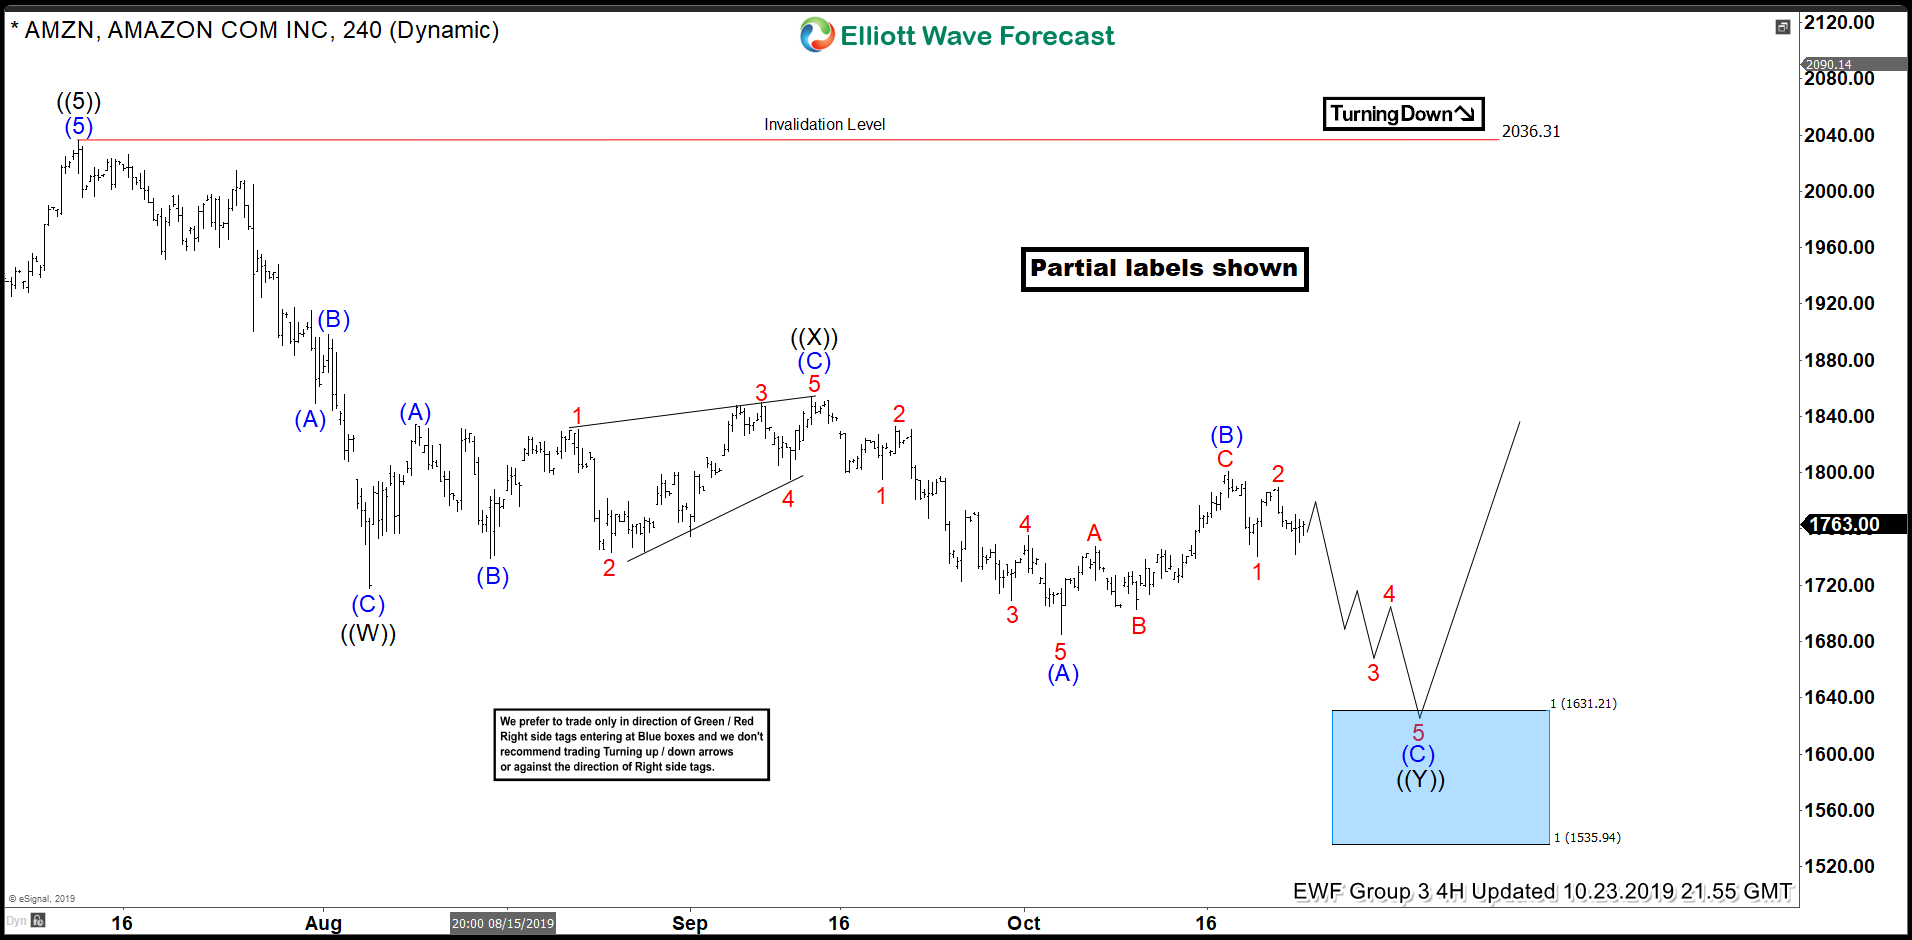 AMZN Buying The Elliott Wave Dips At Blue Box Area